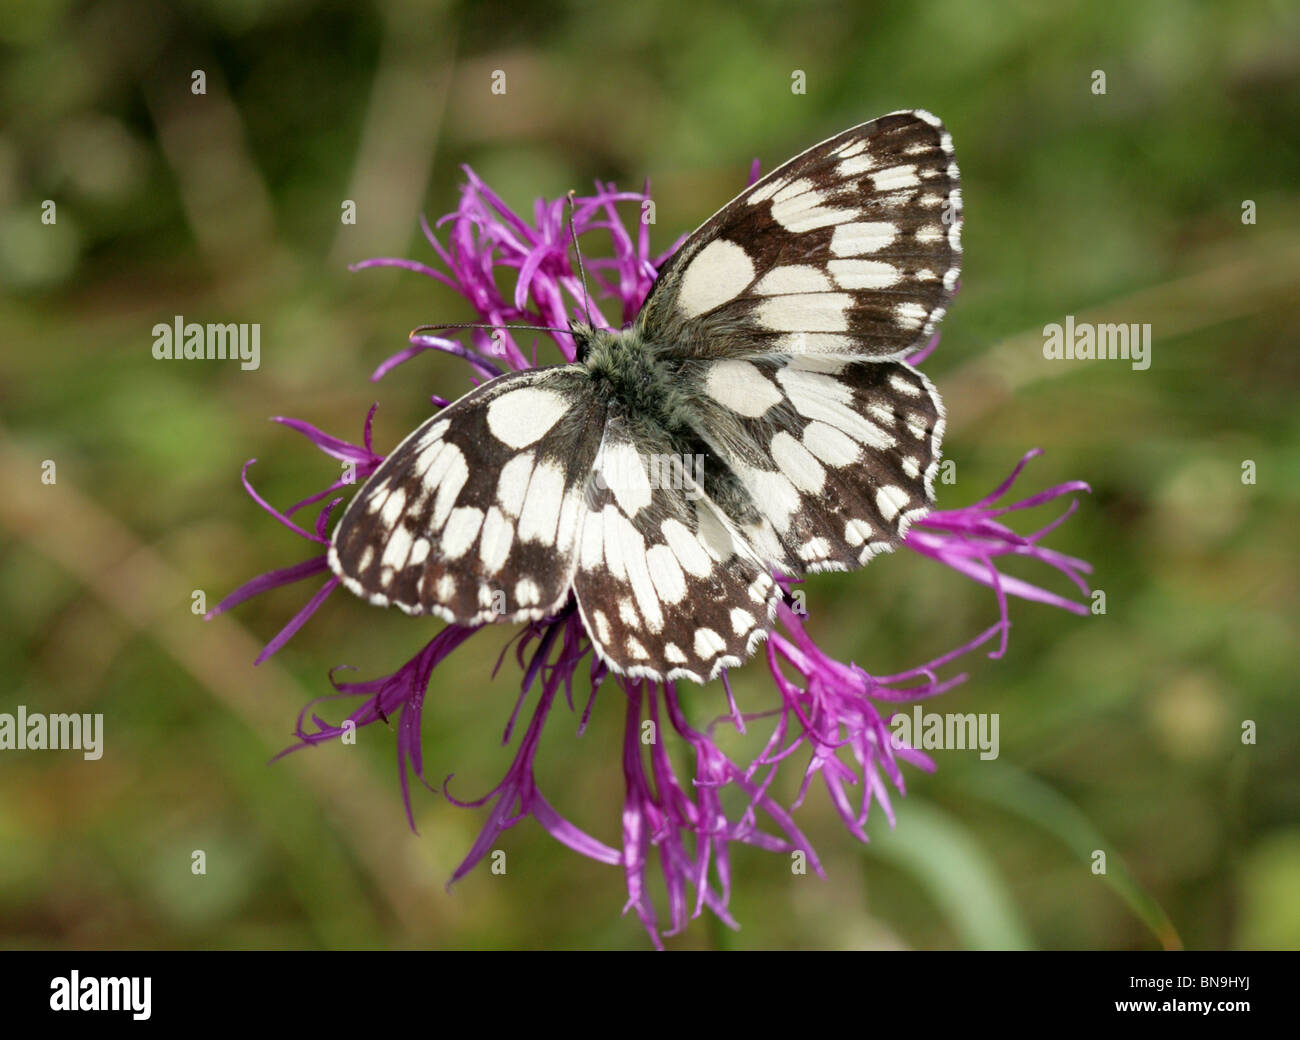 Marbled White Butterfly, Melanargia galathea, Nymphalidae, on a Greater Knapweed Flower - Stock Image